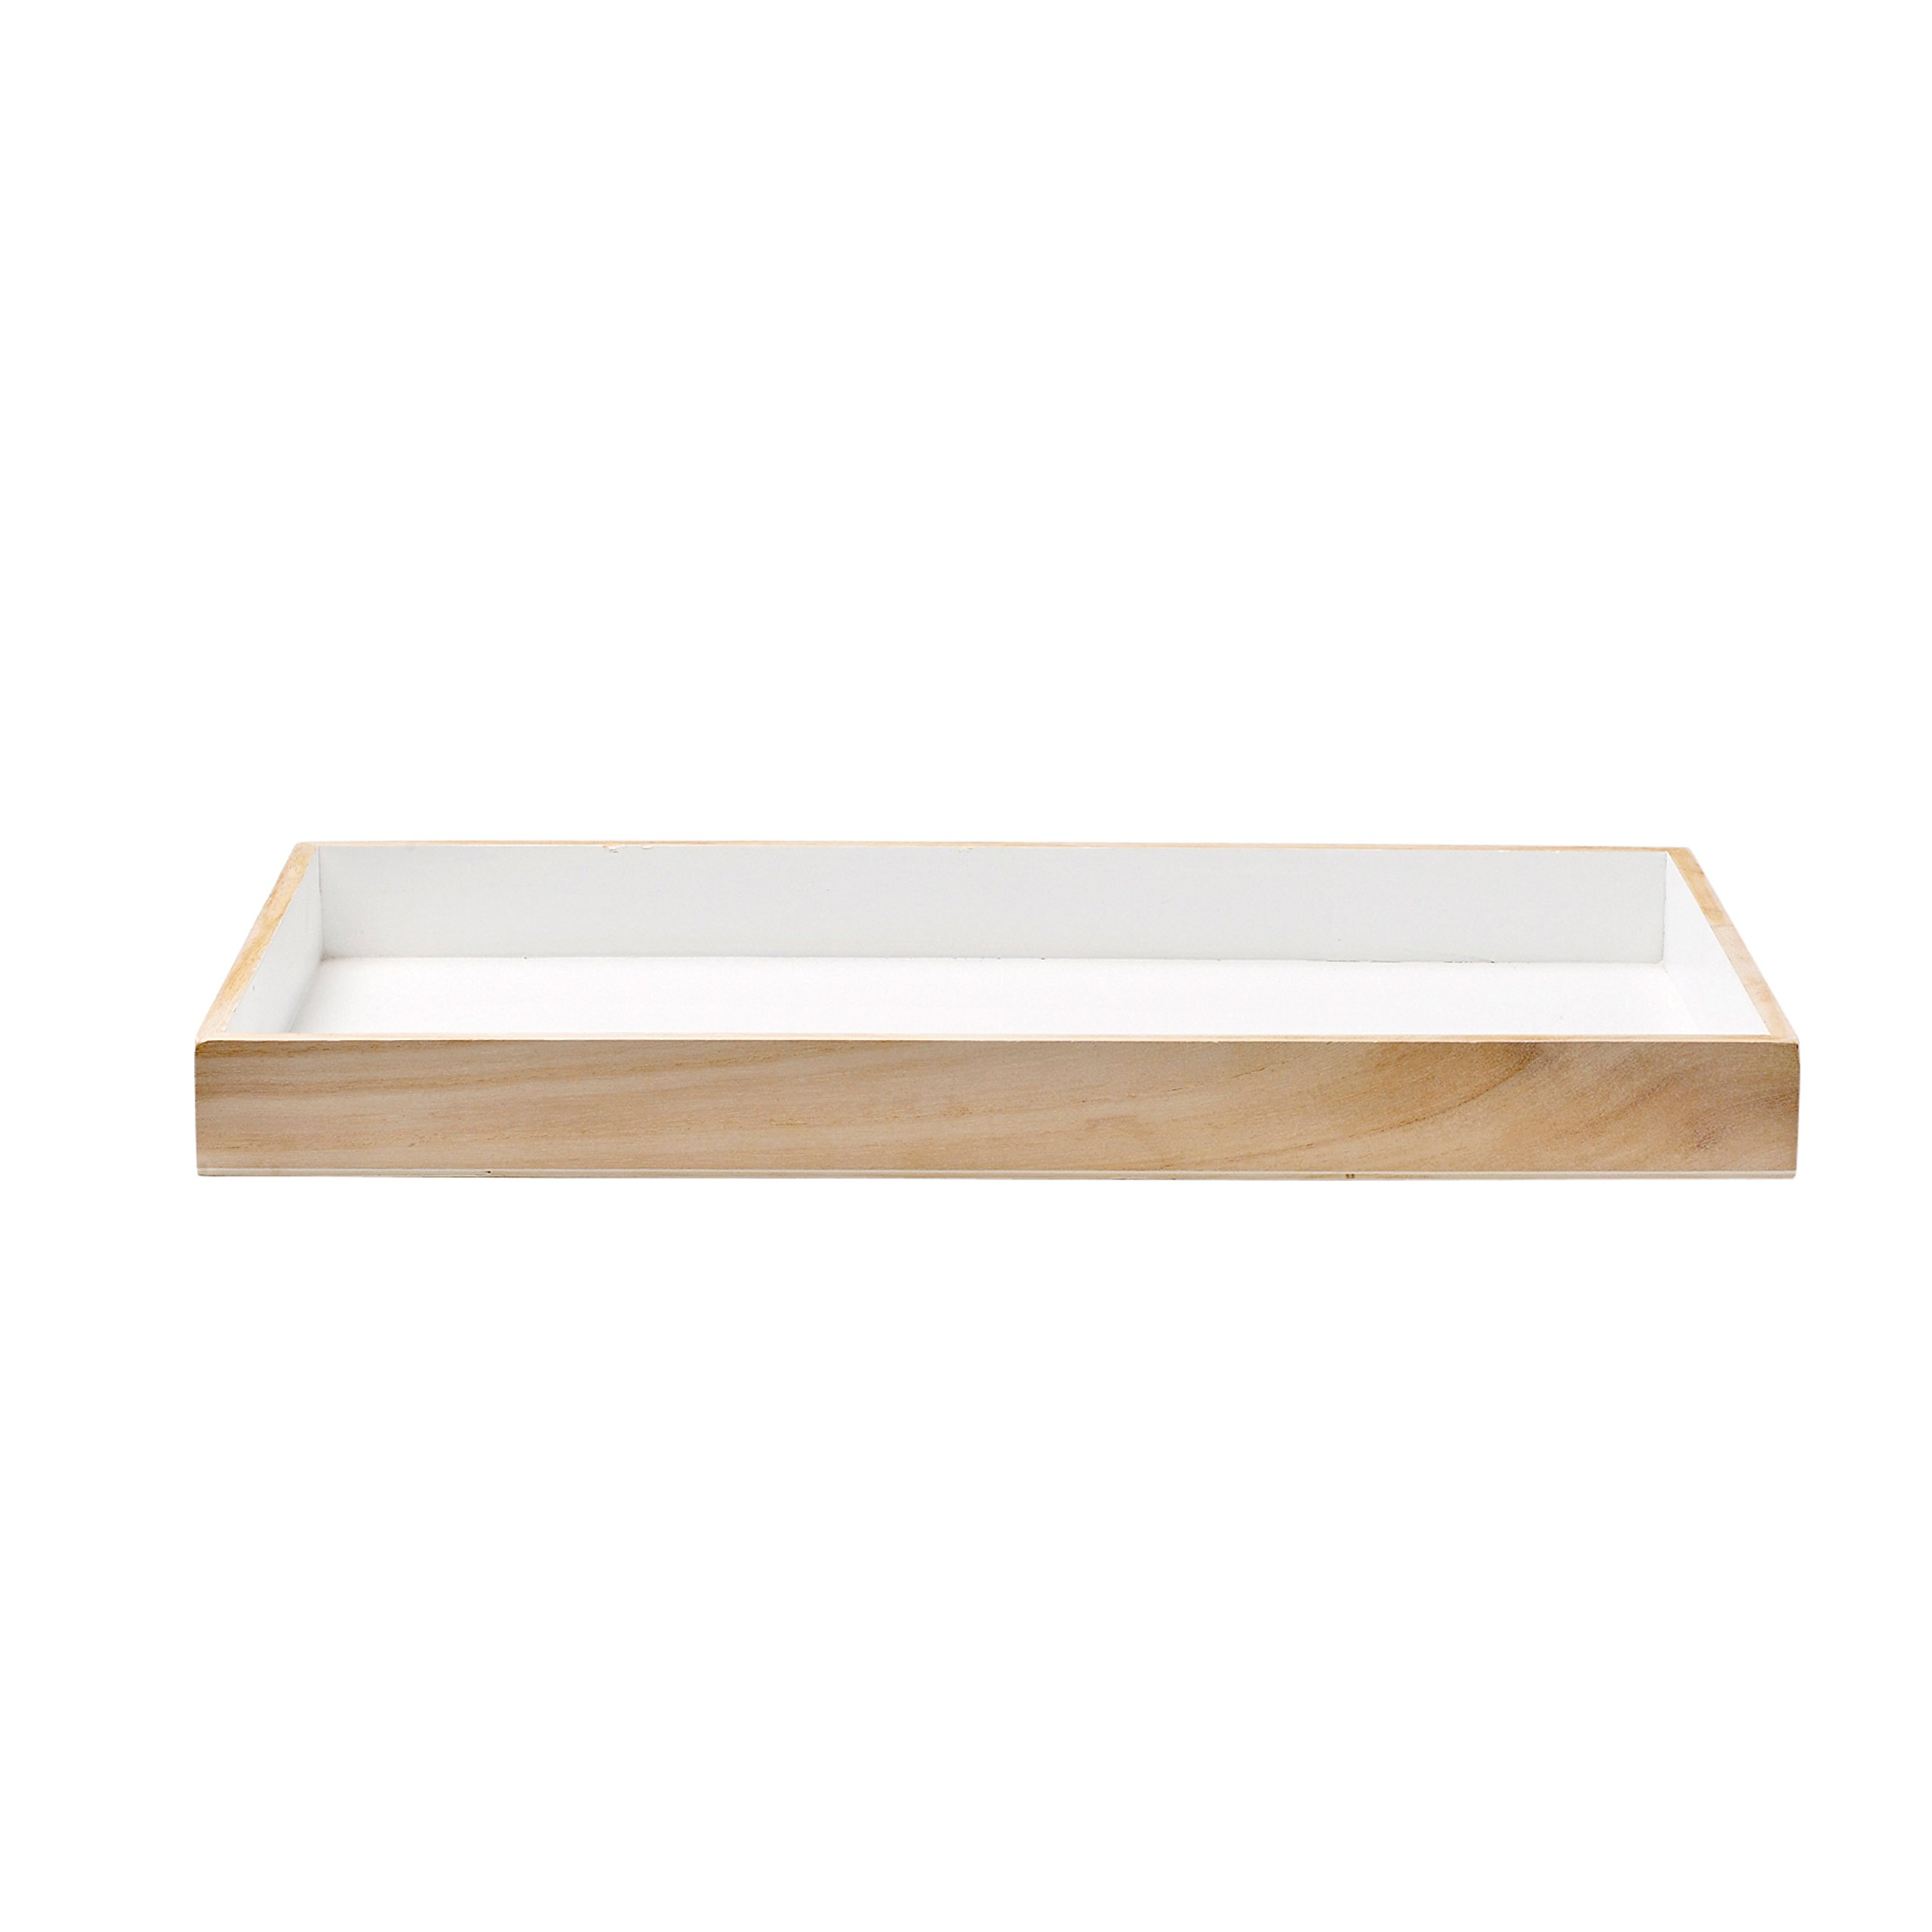 Bloomingville A509053 Wood Tray with White Bottom, Multicolor by Bloomingville (Image #1)